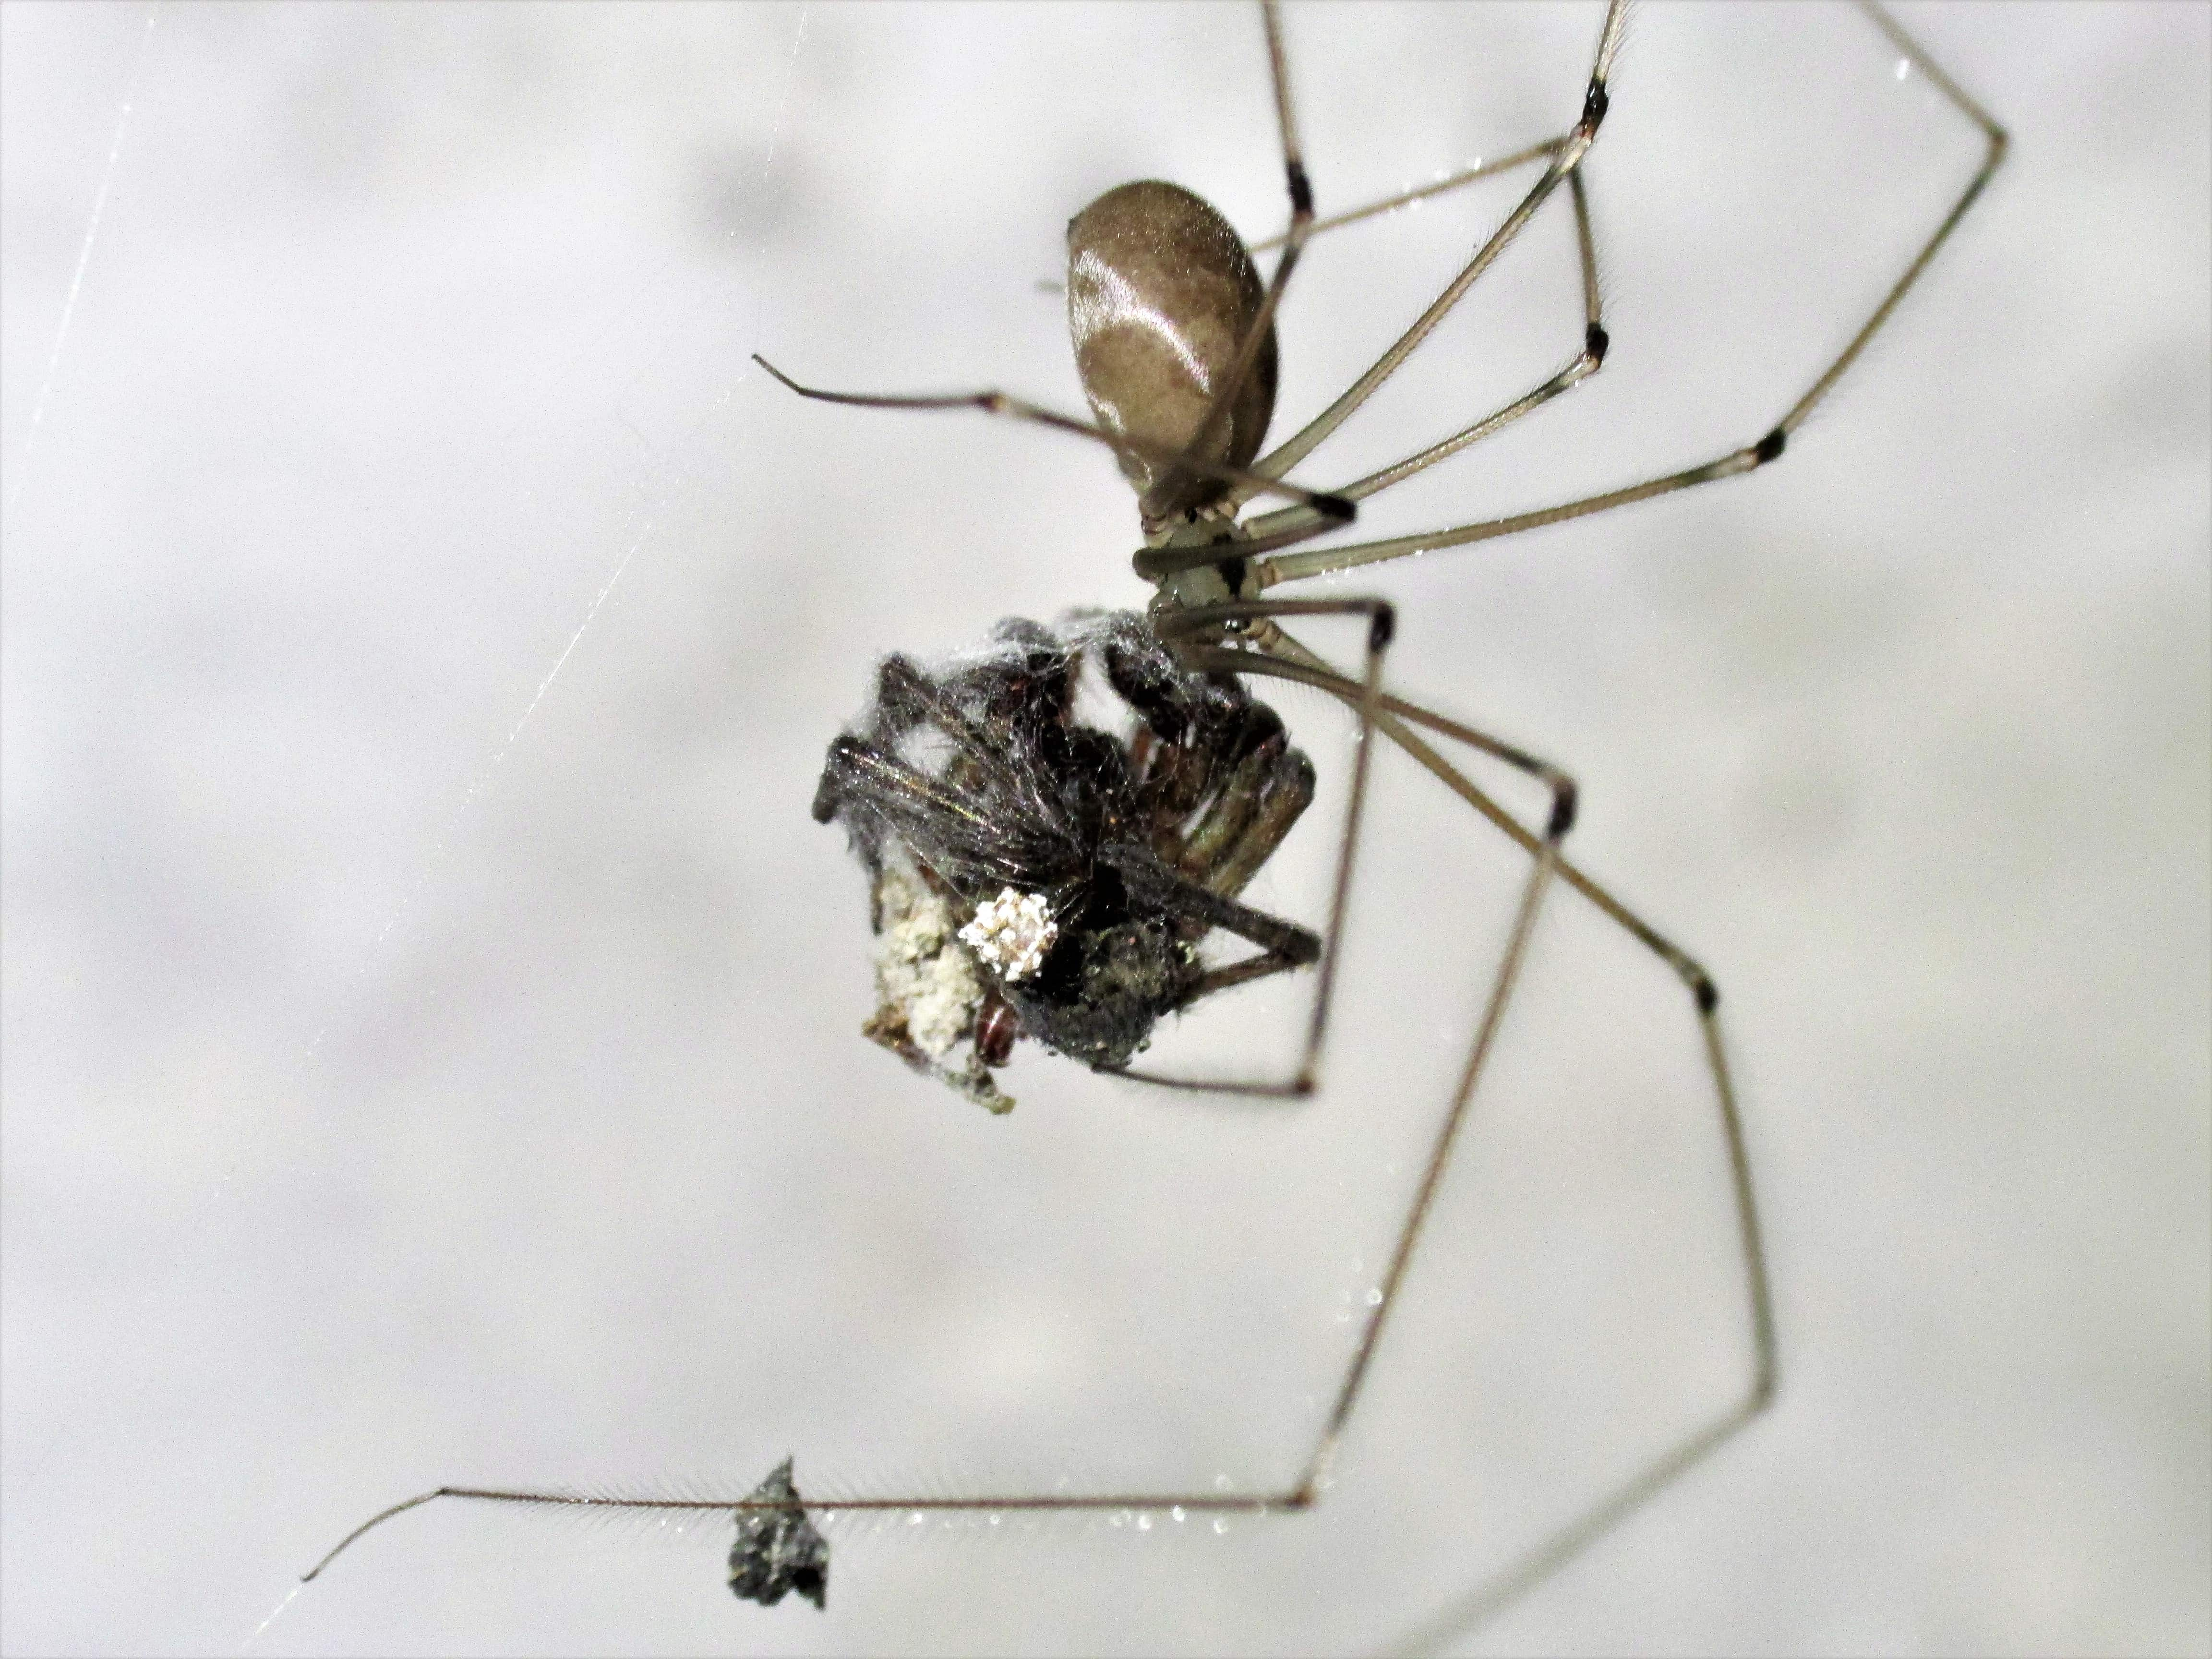 Picture of Pholcus phalangioides (Long-bodied Cellar Spider) - Lateral,Prey